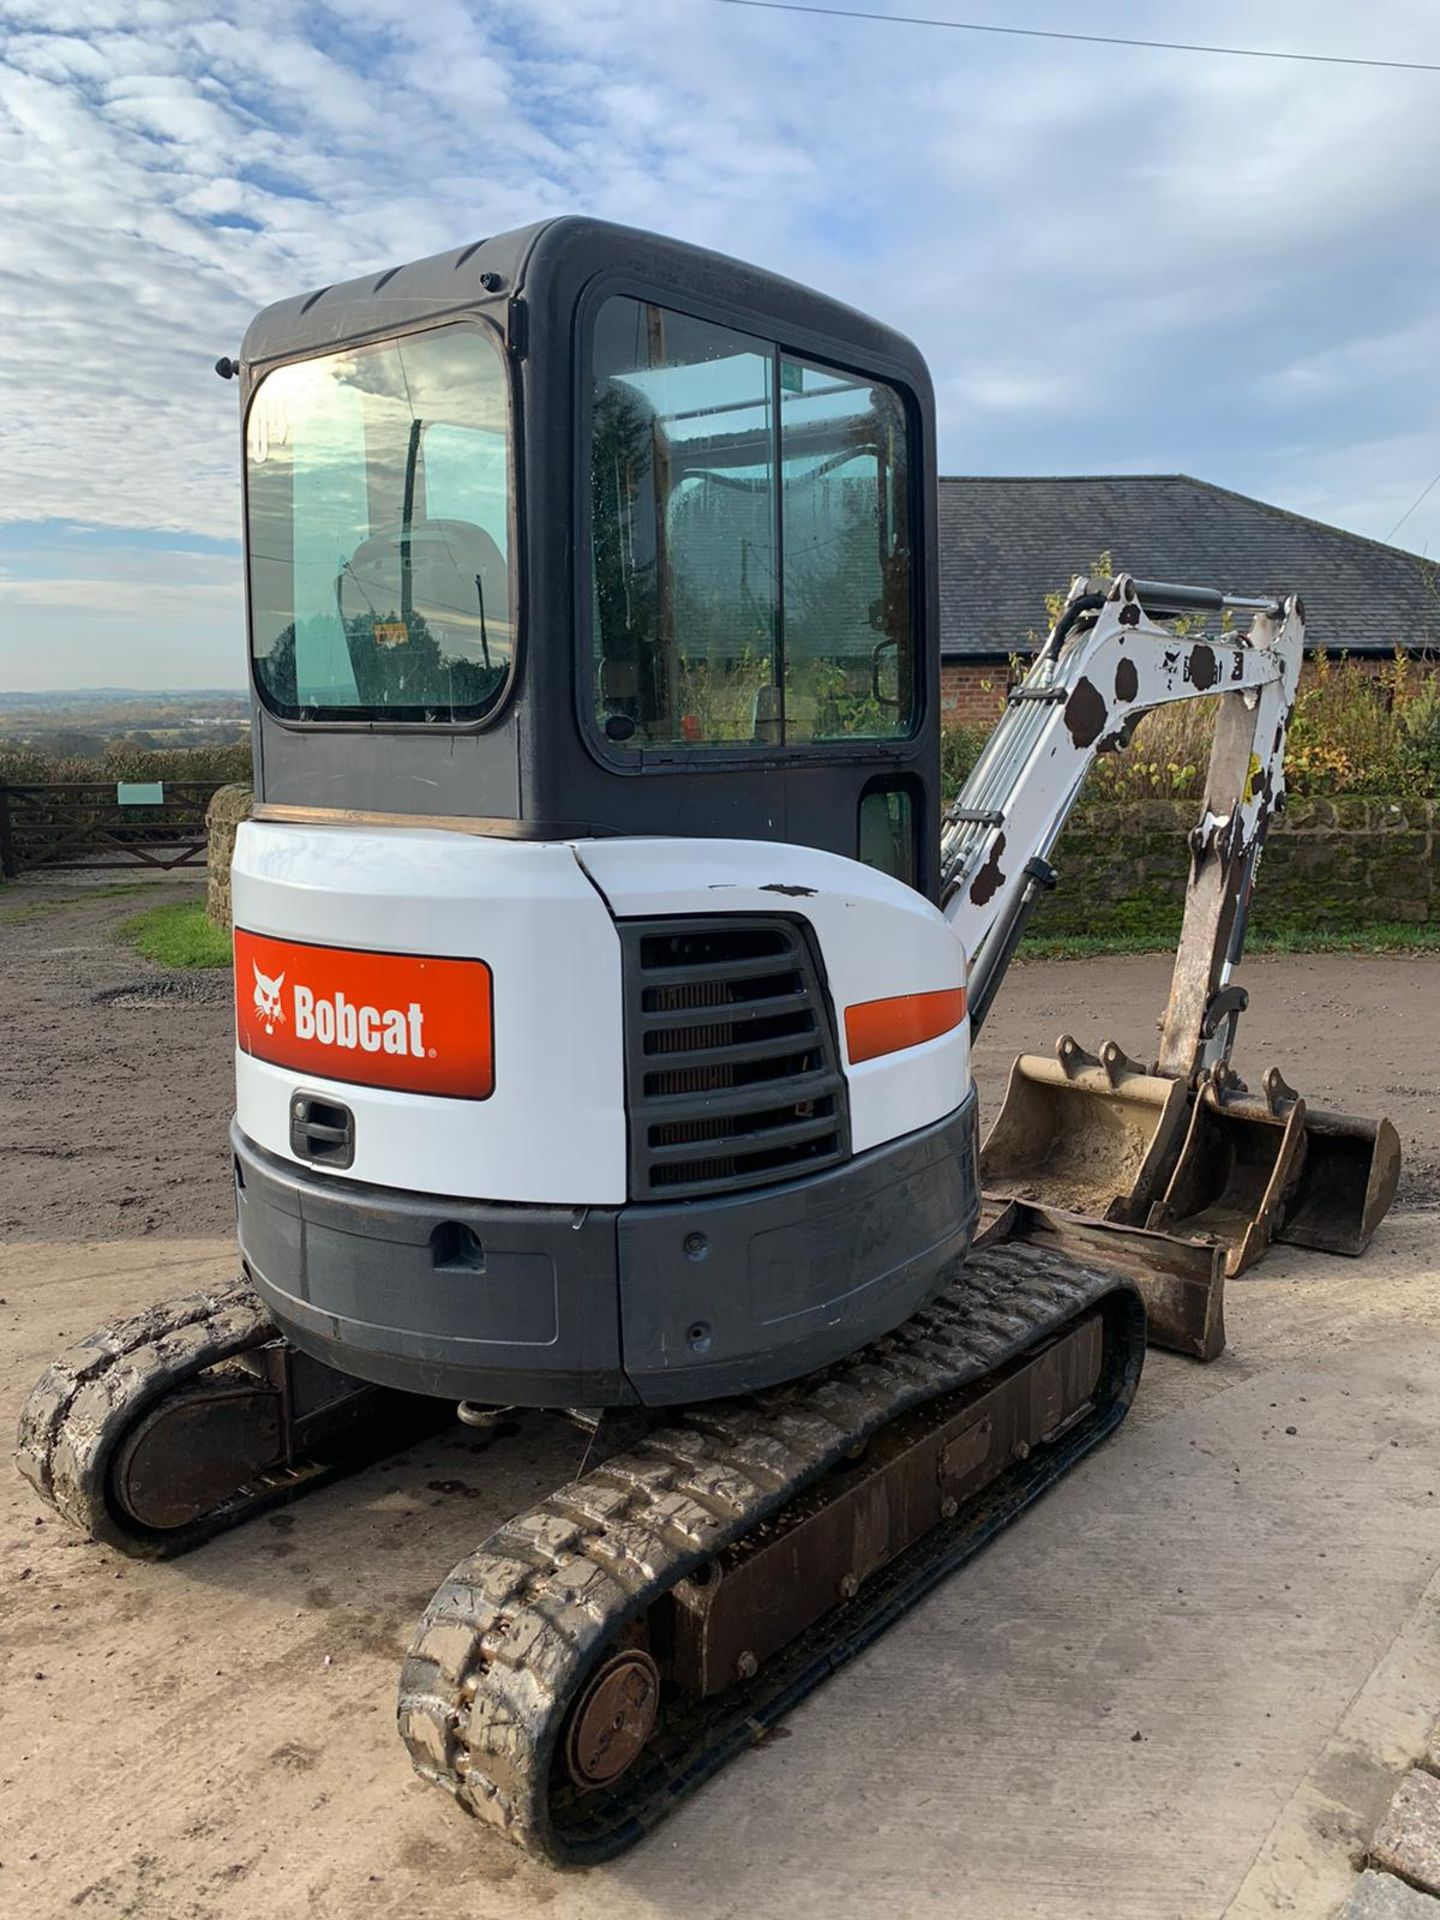 2012 BOBCAT E26 RUBBER TRACKED CRAWLER EXCAVATOR / MINI DIGGER, RUNS, DRIVES AND DIGS, 3 X BUCKETS - Image 2 of 5